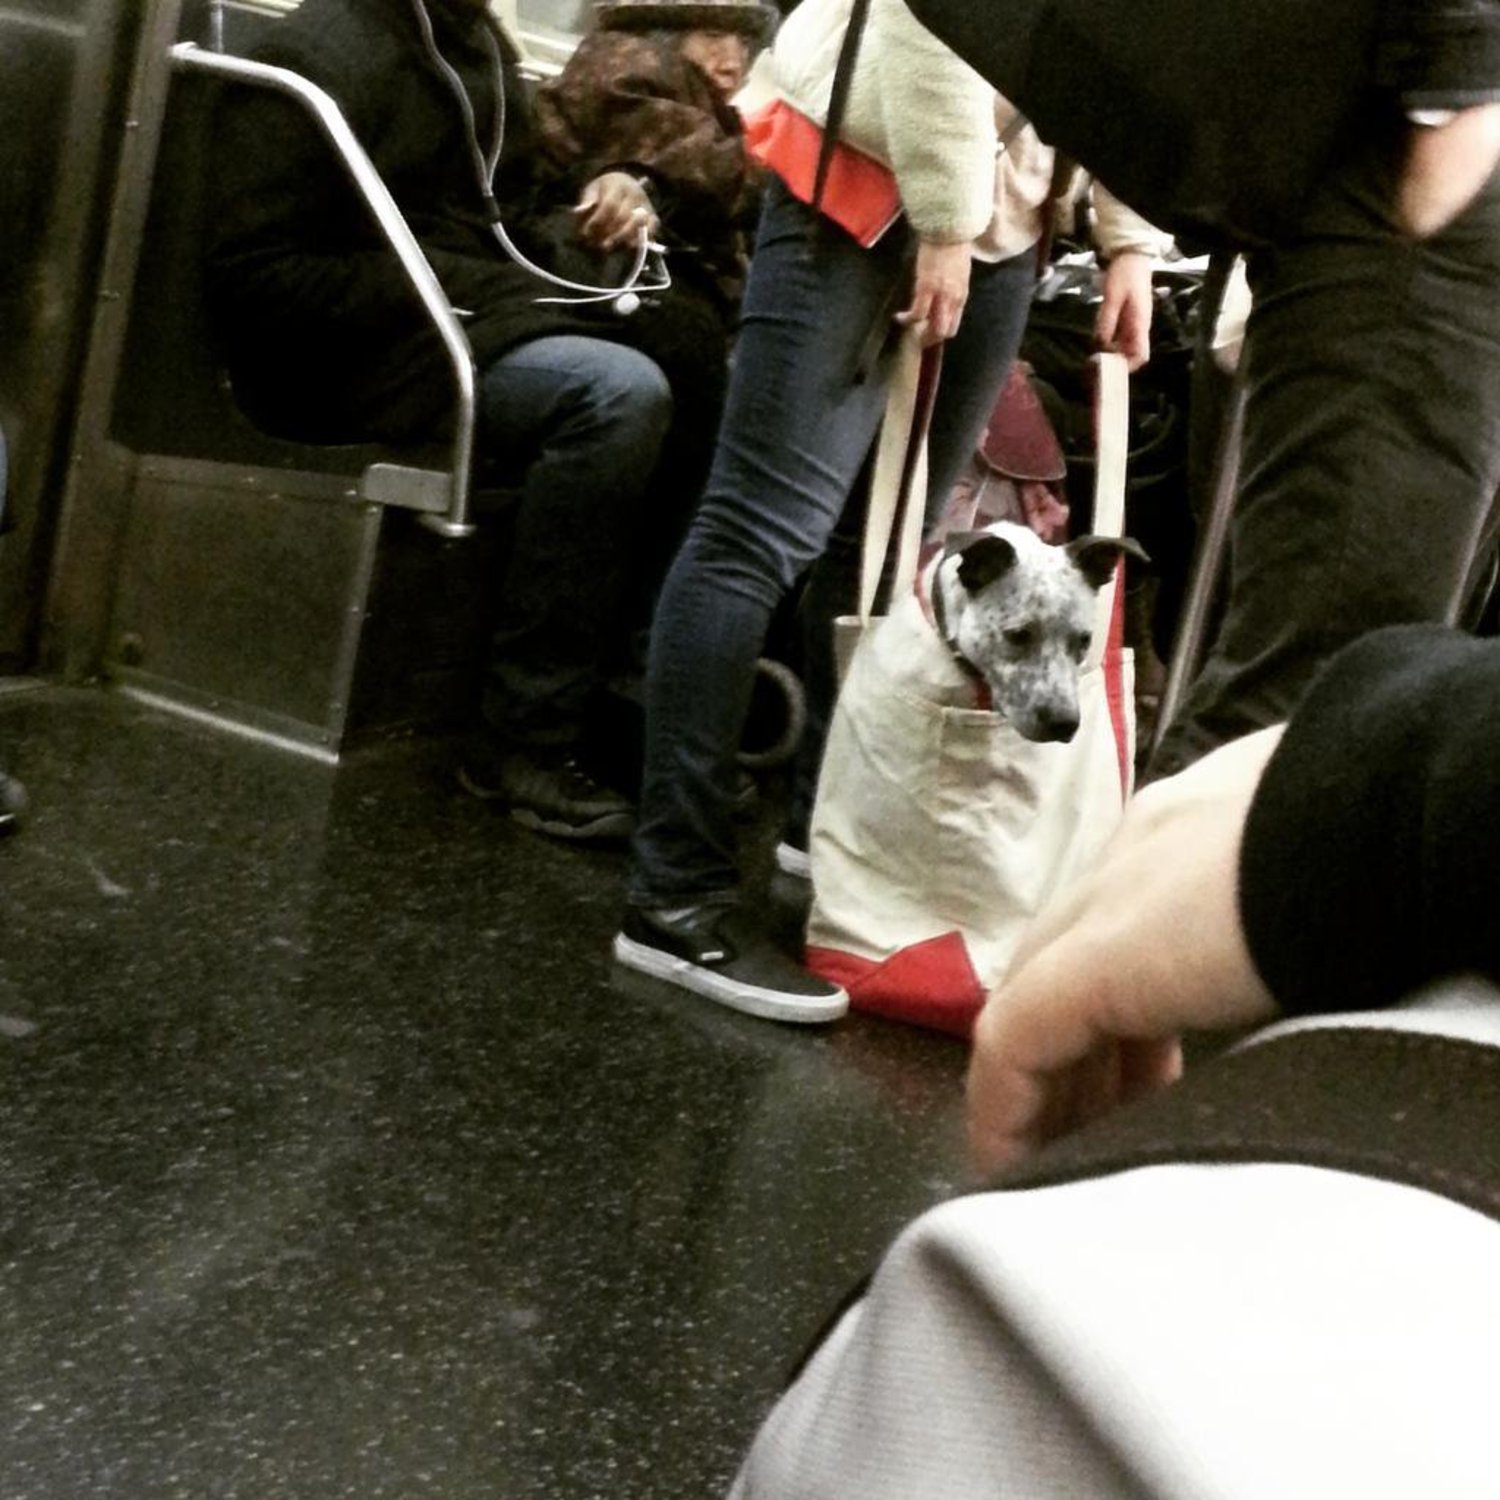 I should start a collection of ways people transport their dogs on the subway. #1: Large dog in tote bag http://t.co/2lWxQdhynO